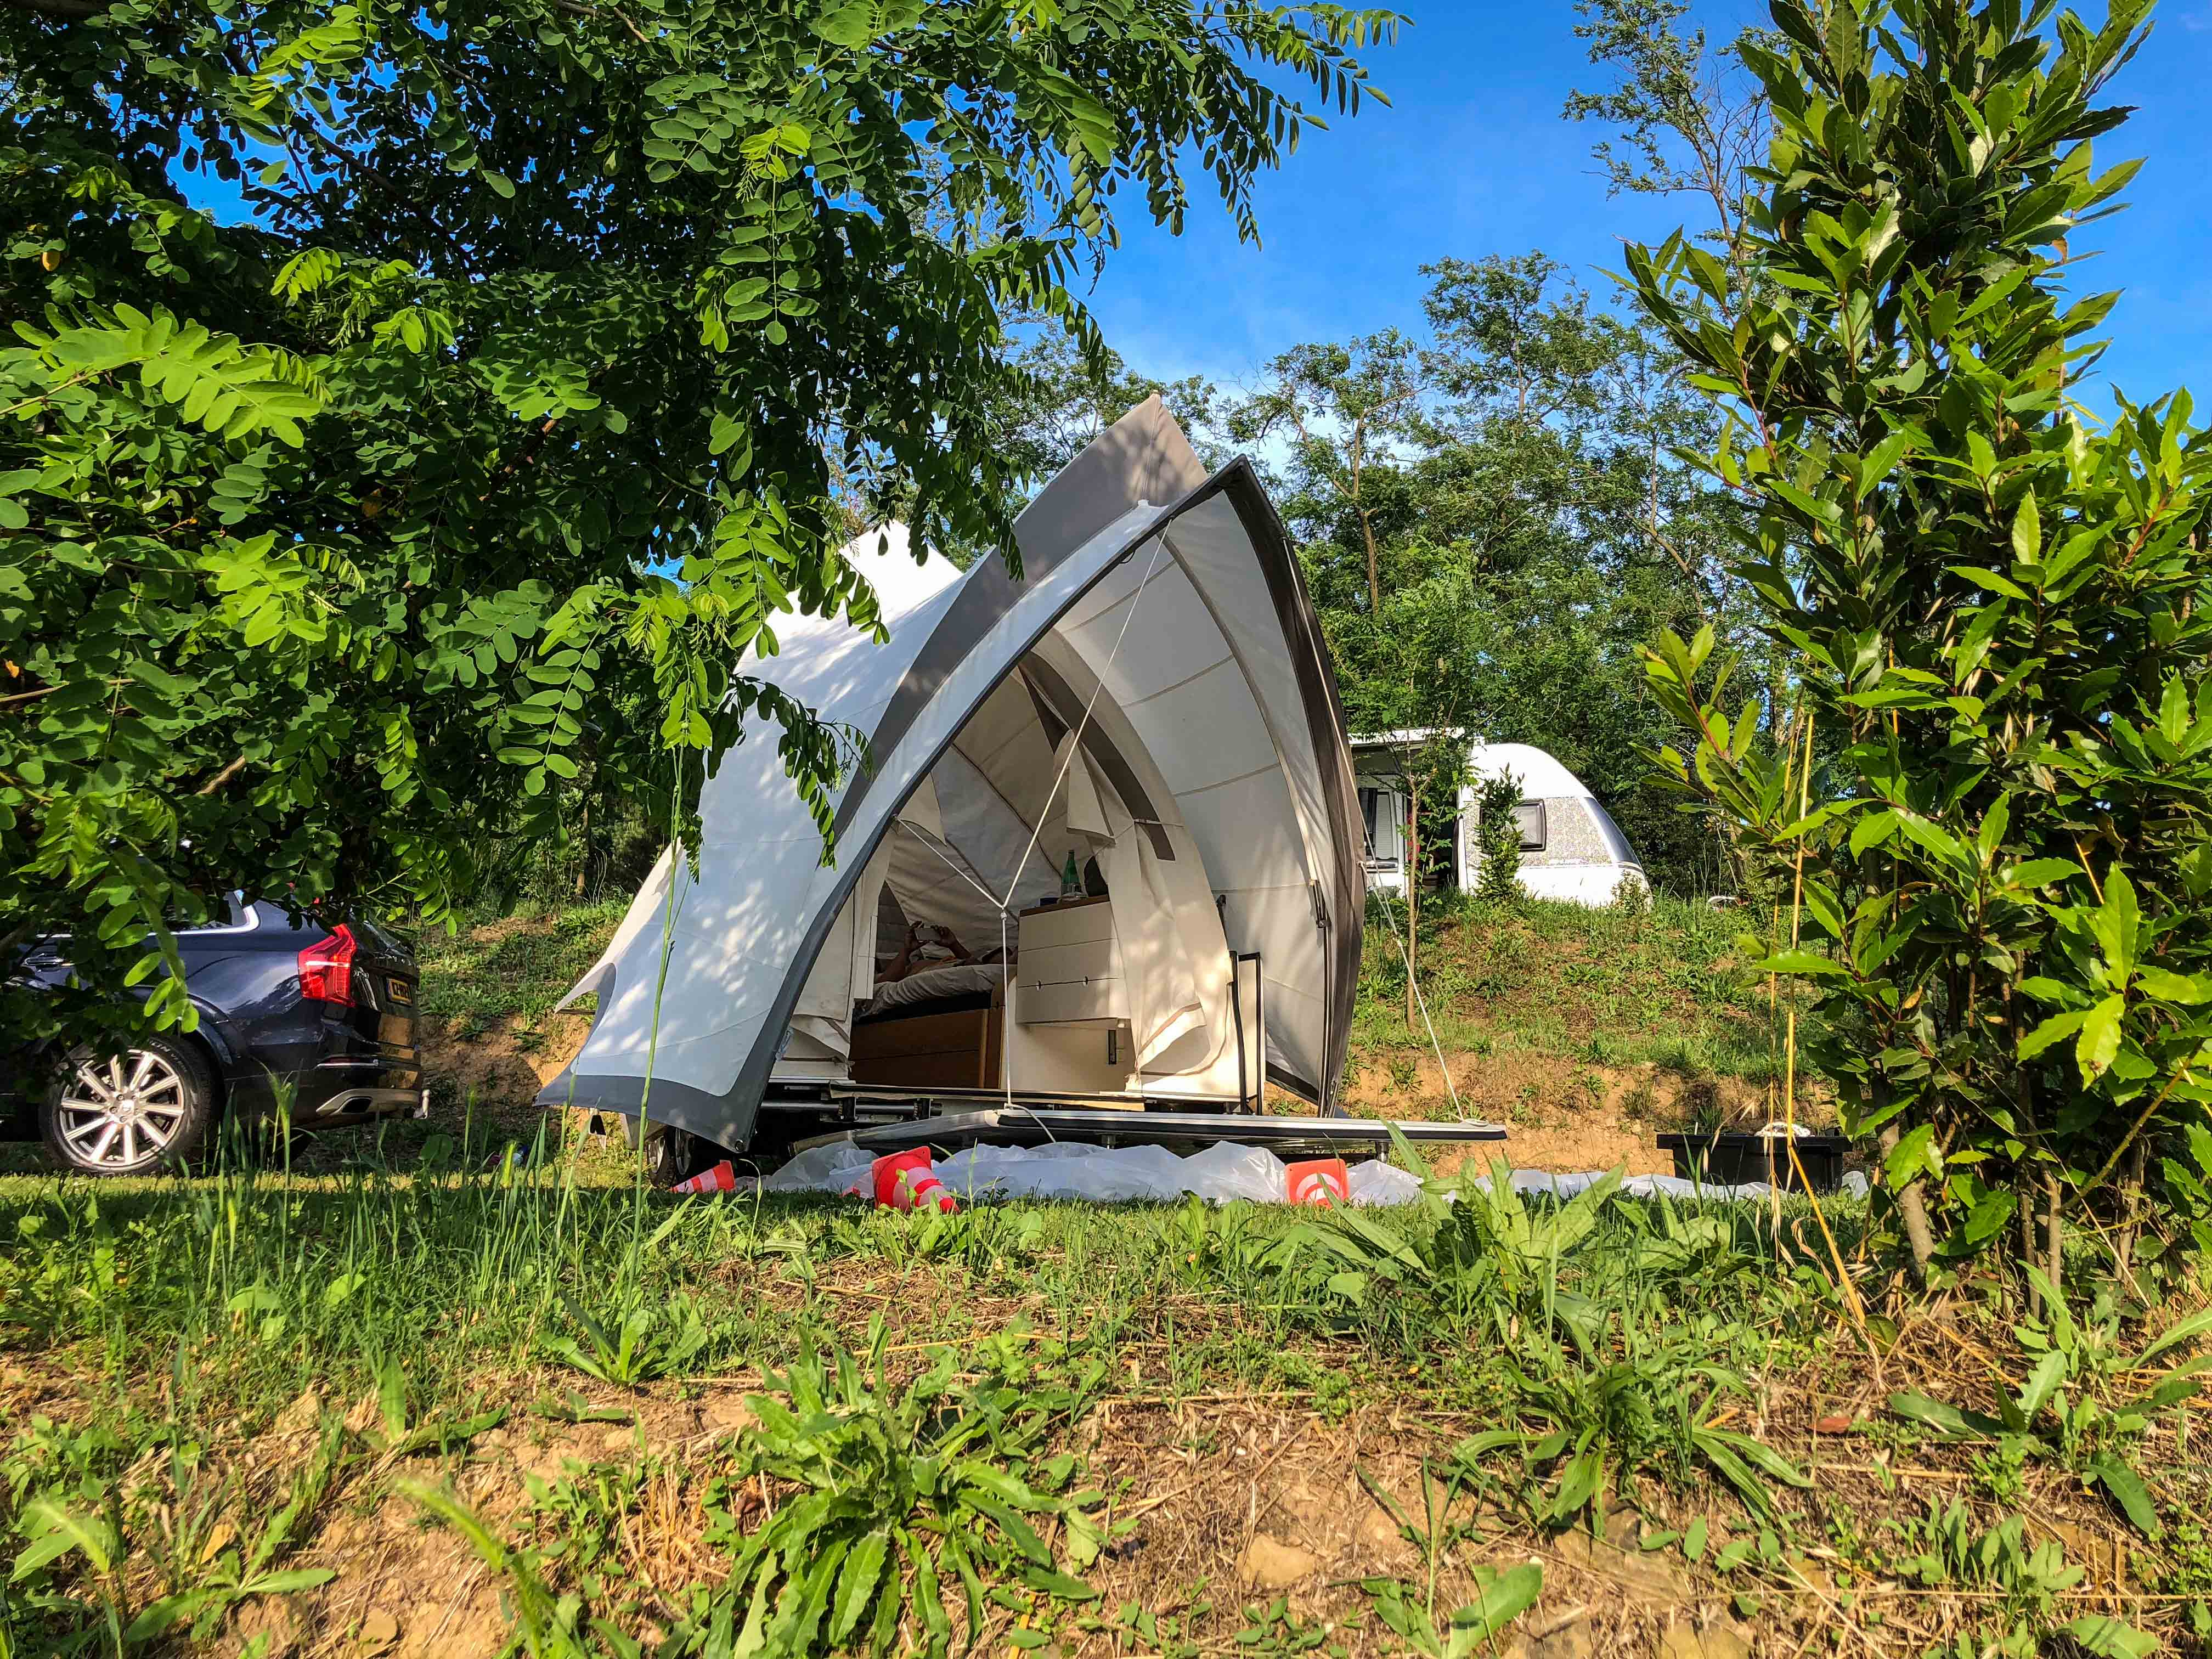 barco reale camping